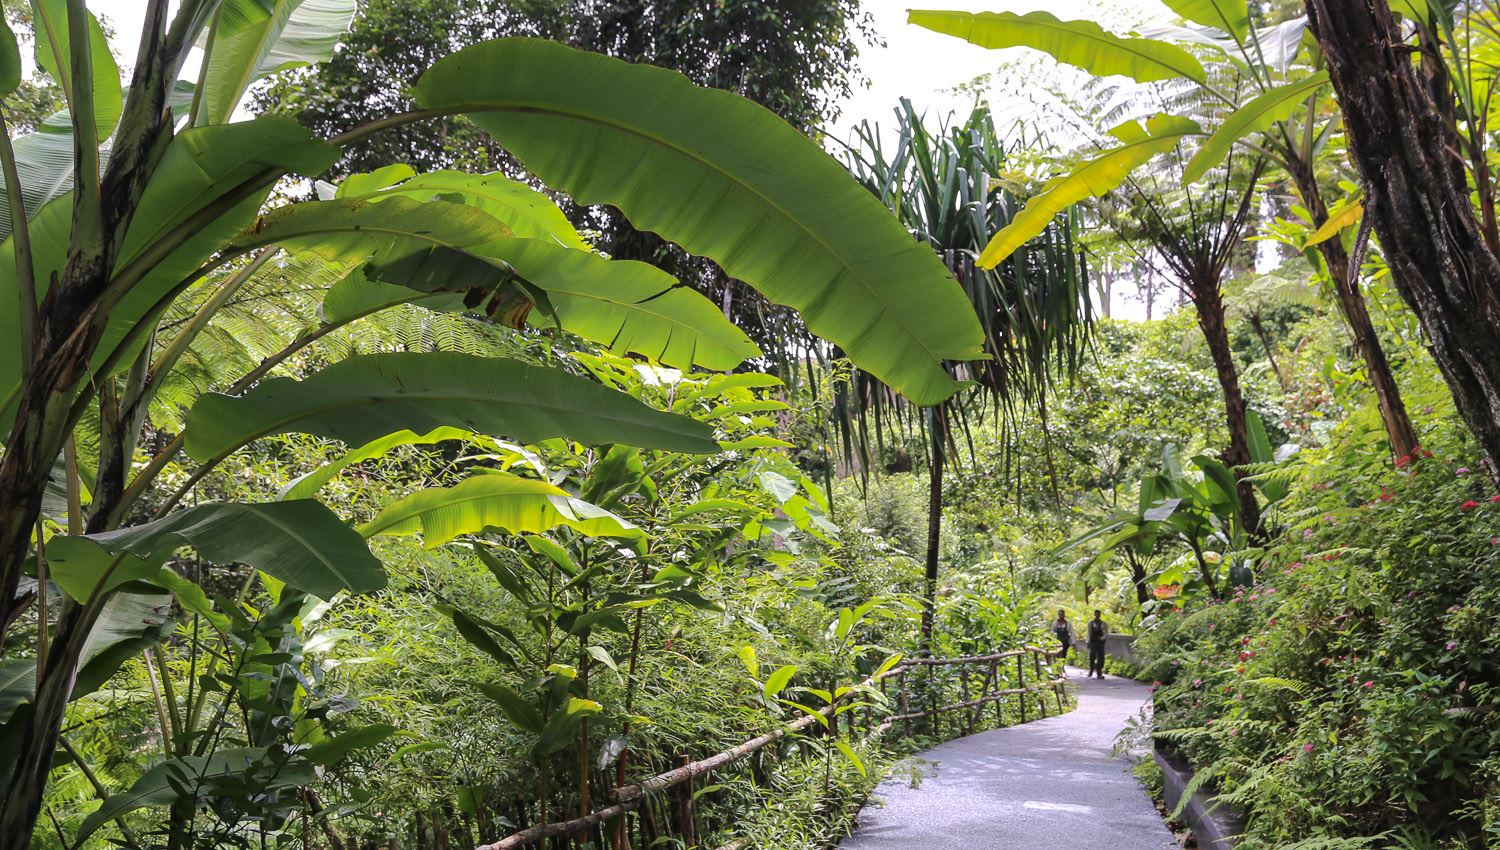 The Habitat's walking paths are easy for seniors. Image:  © Alan Williams